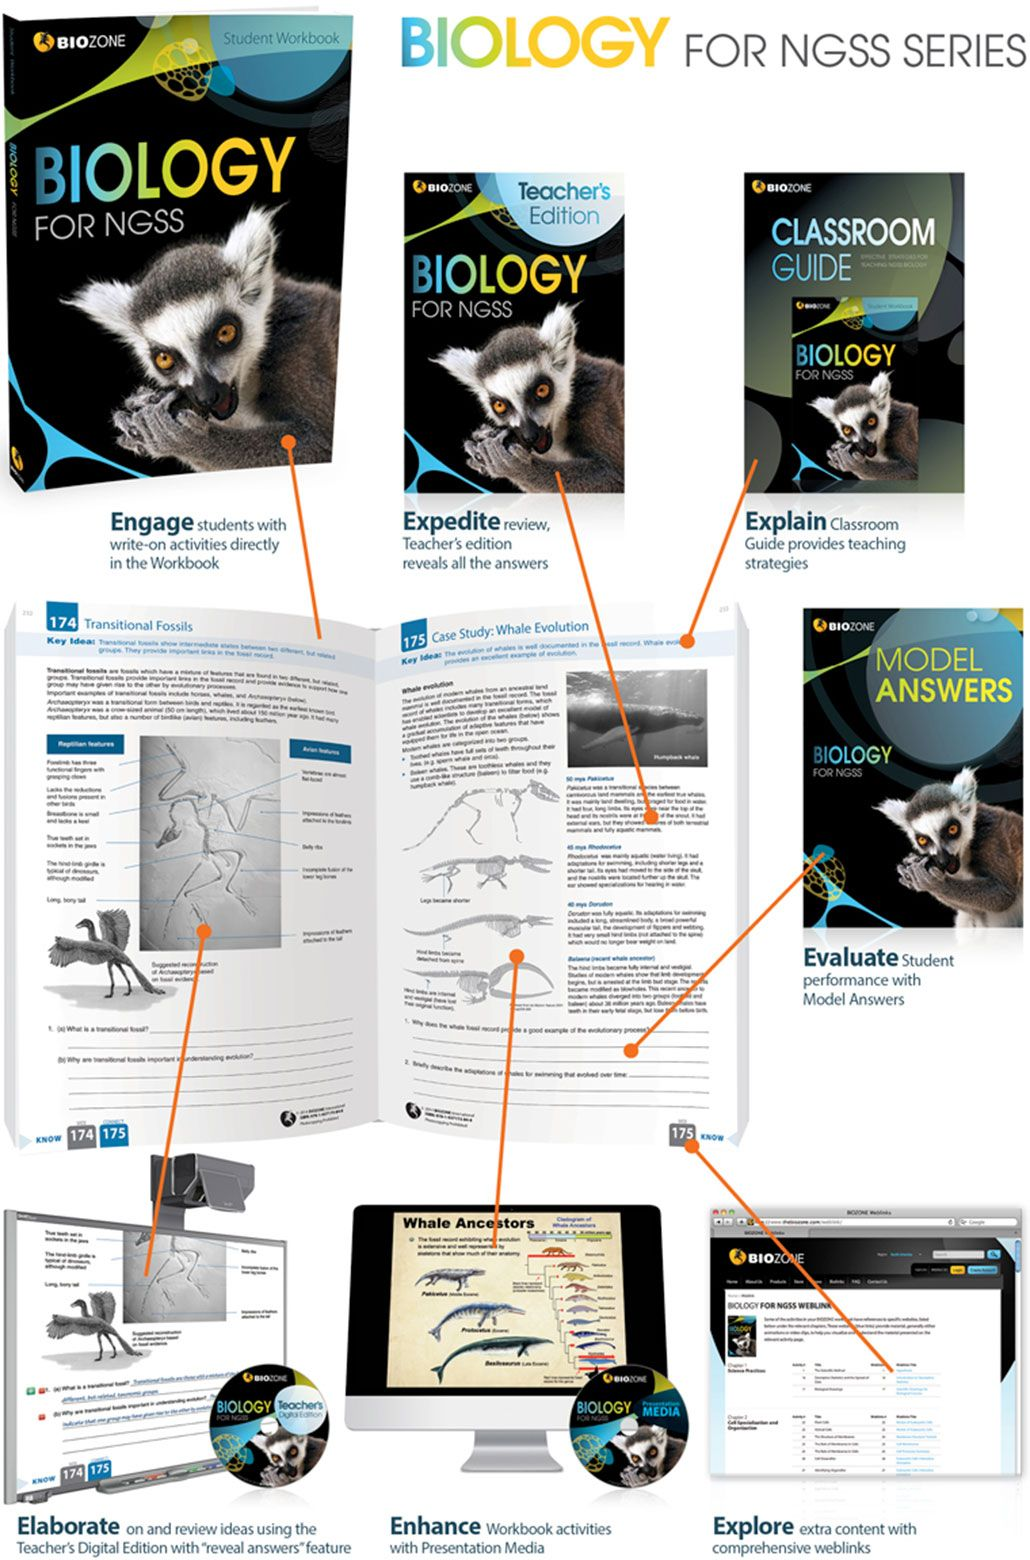 Biology for ngss student workbook biozone biology for ngss is an biology for ngss student workbook biozone biology for ngss is an entirely new resource fandeluxe Choice Image